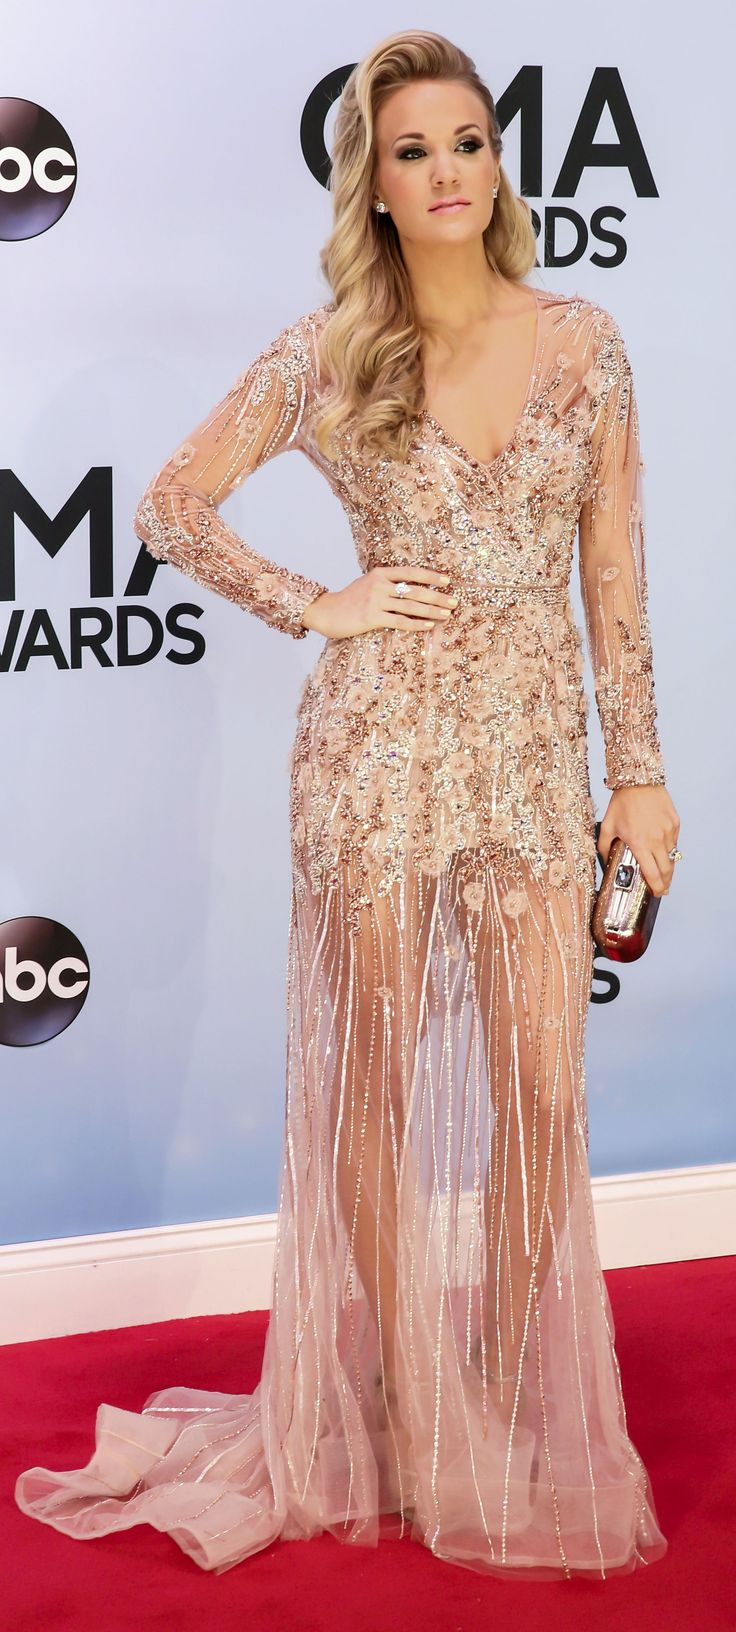 Carrie Underwood at the CMA Awards